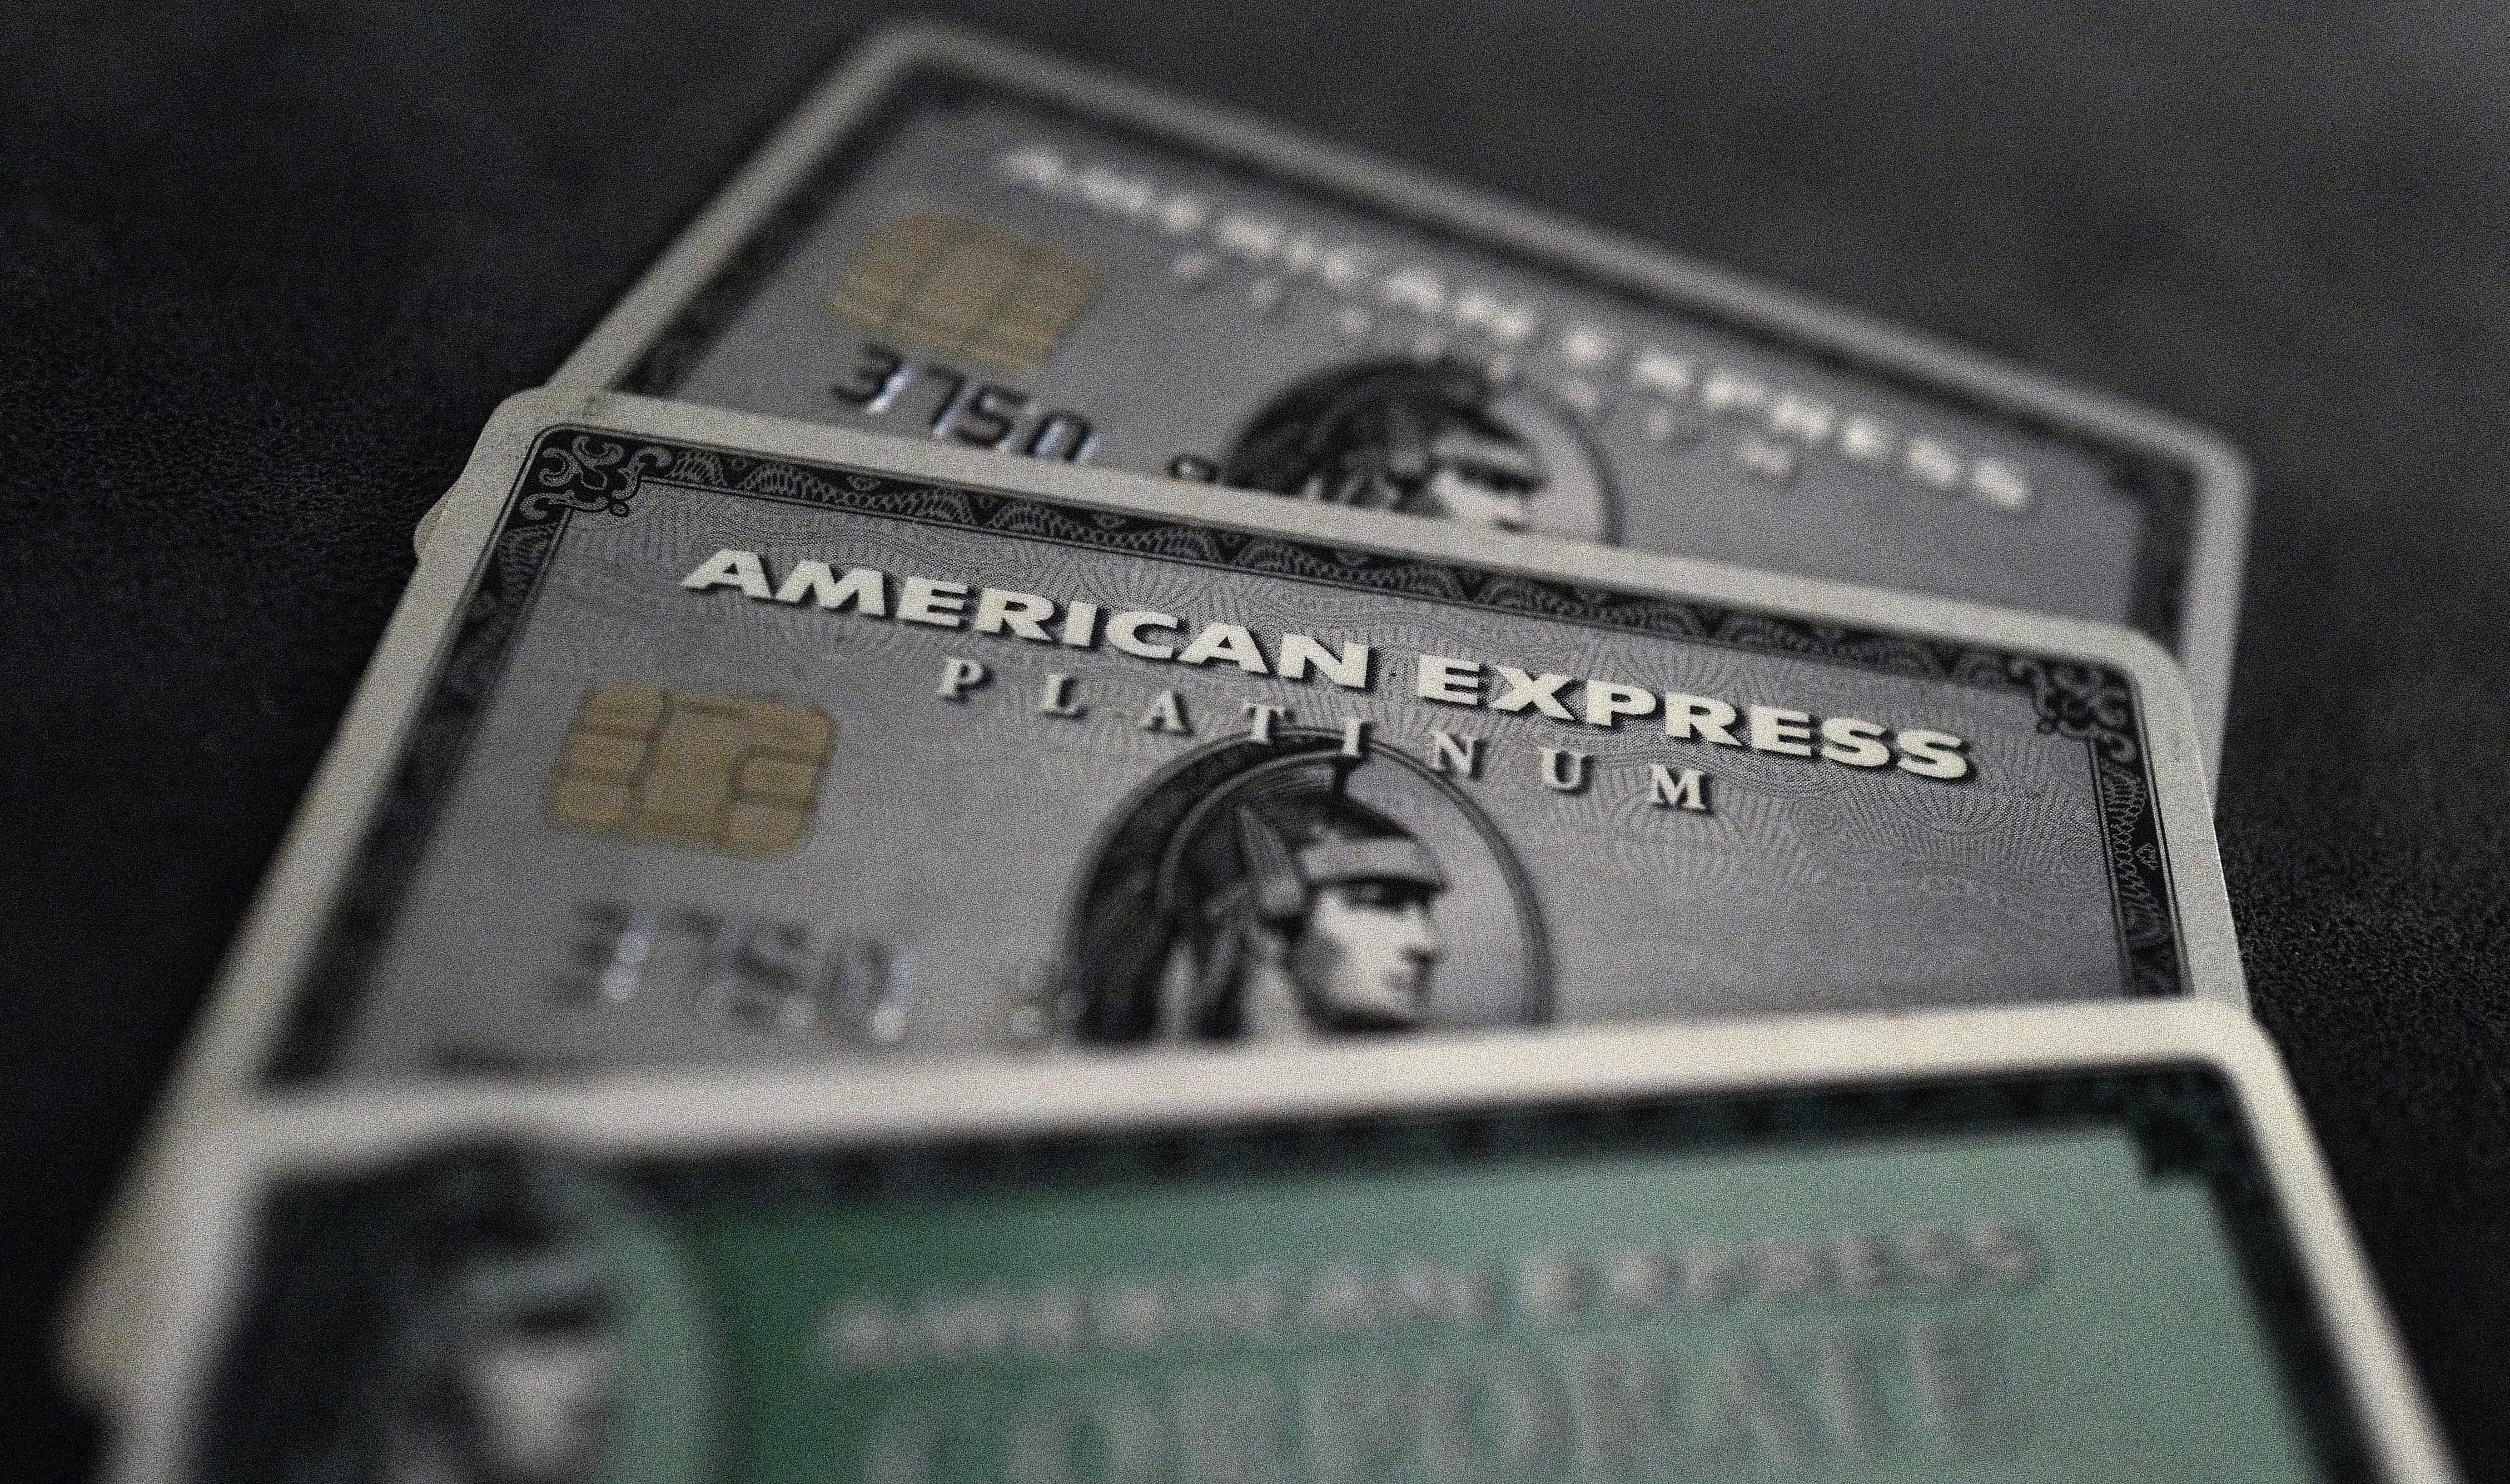 The American Express (AXP) Platinum Card is stainless steel and ...